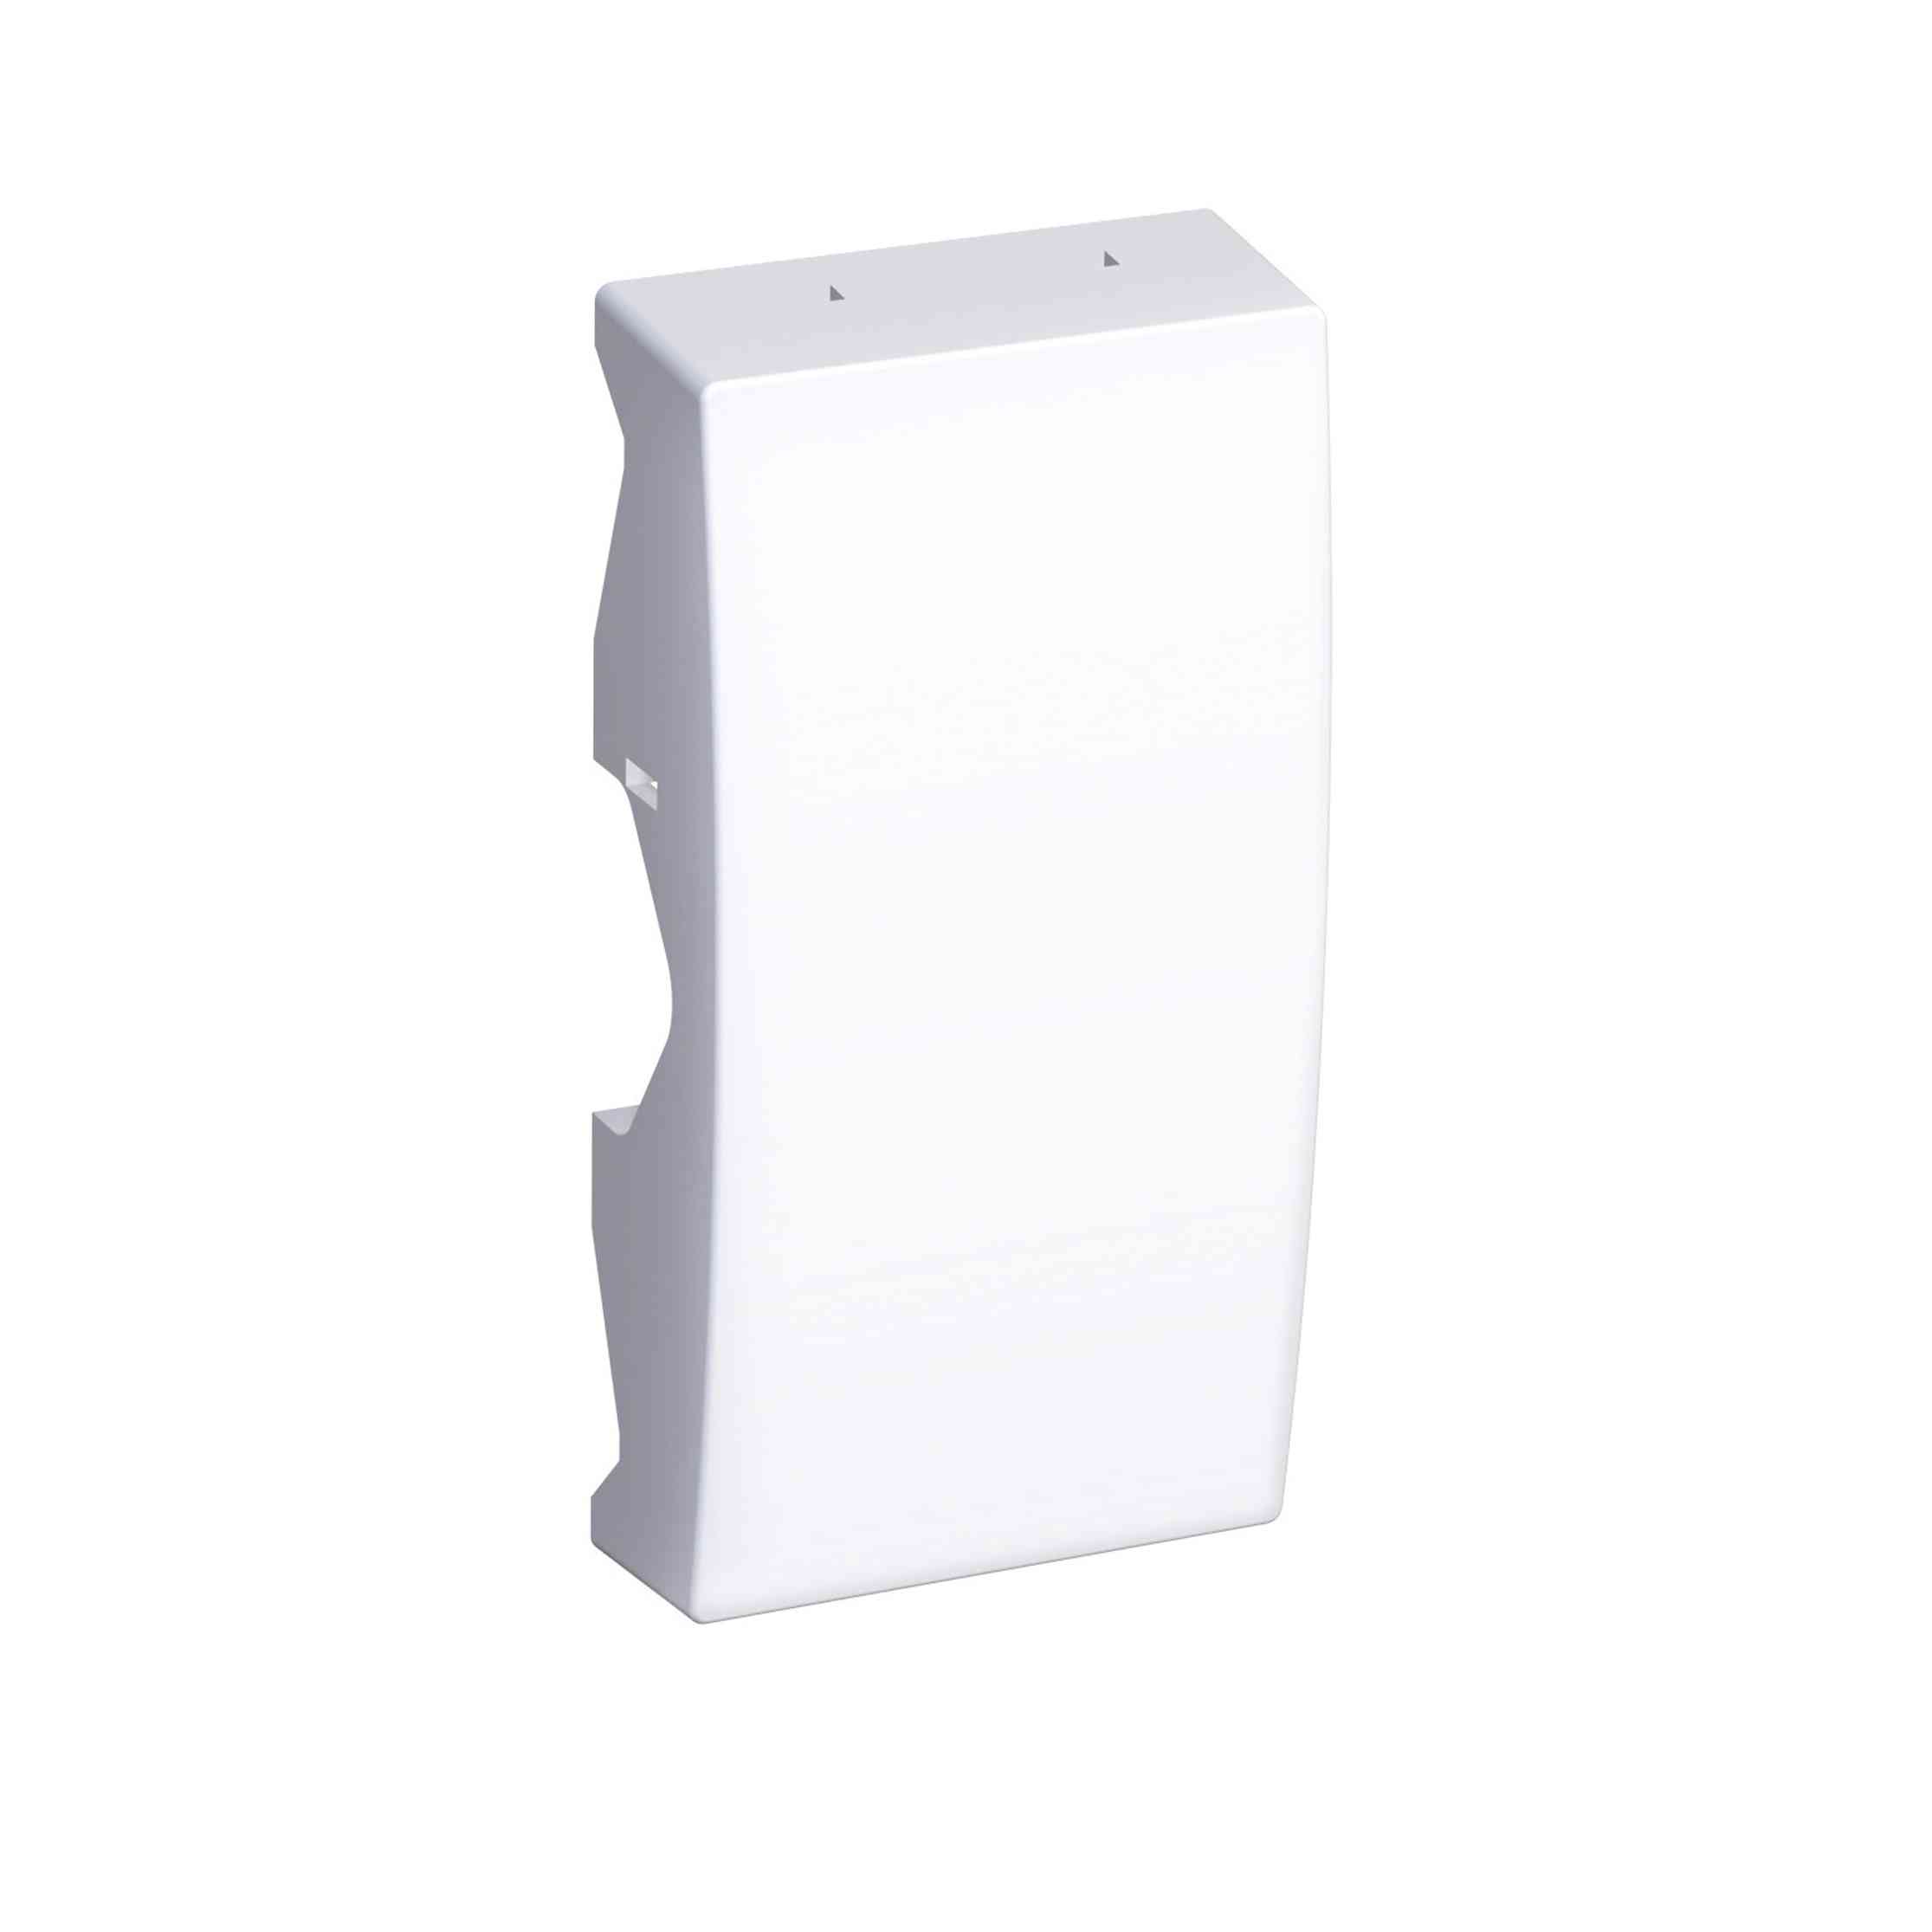 Altira - blind cover plate - 1 module - 22.5 mm - polar white